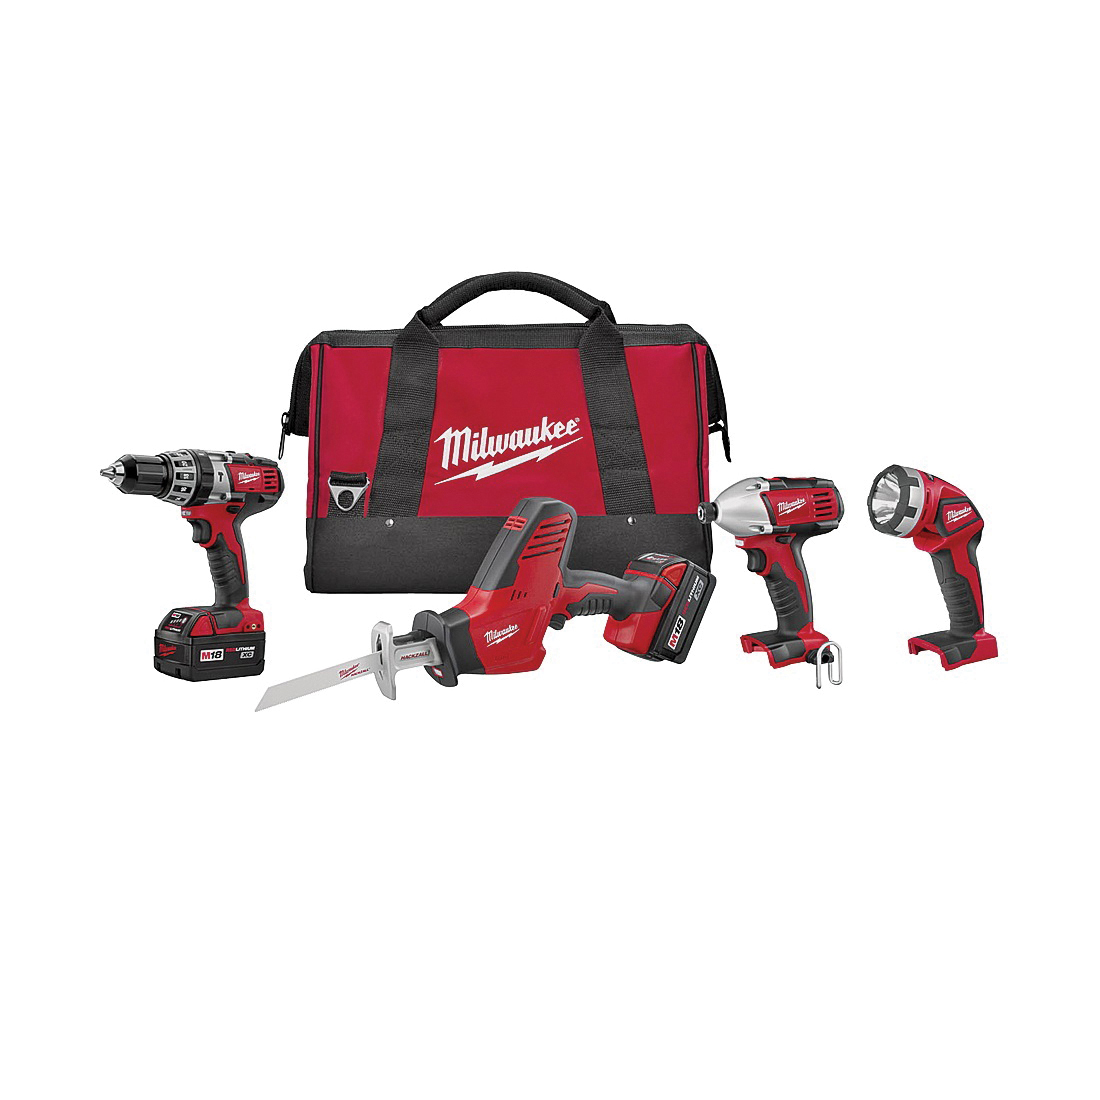 Picture of Milwaukee 2695-24 Four-Tool Combo Kit, Battery Included: Yes